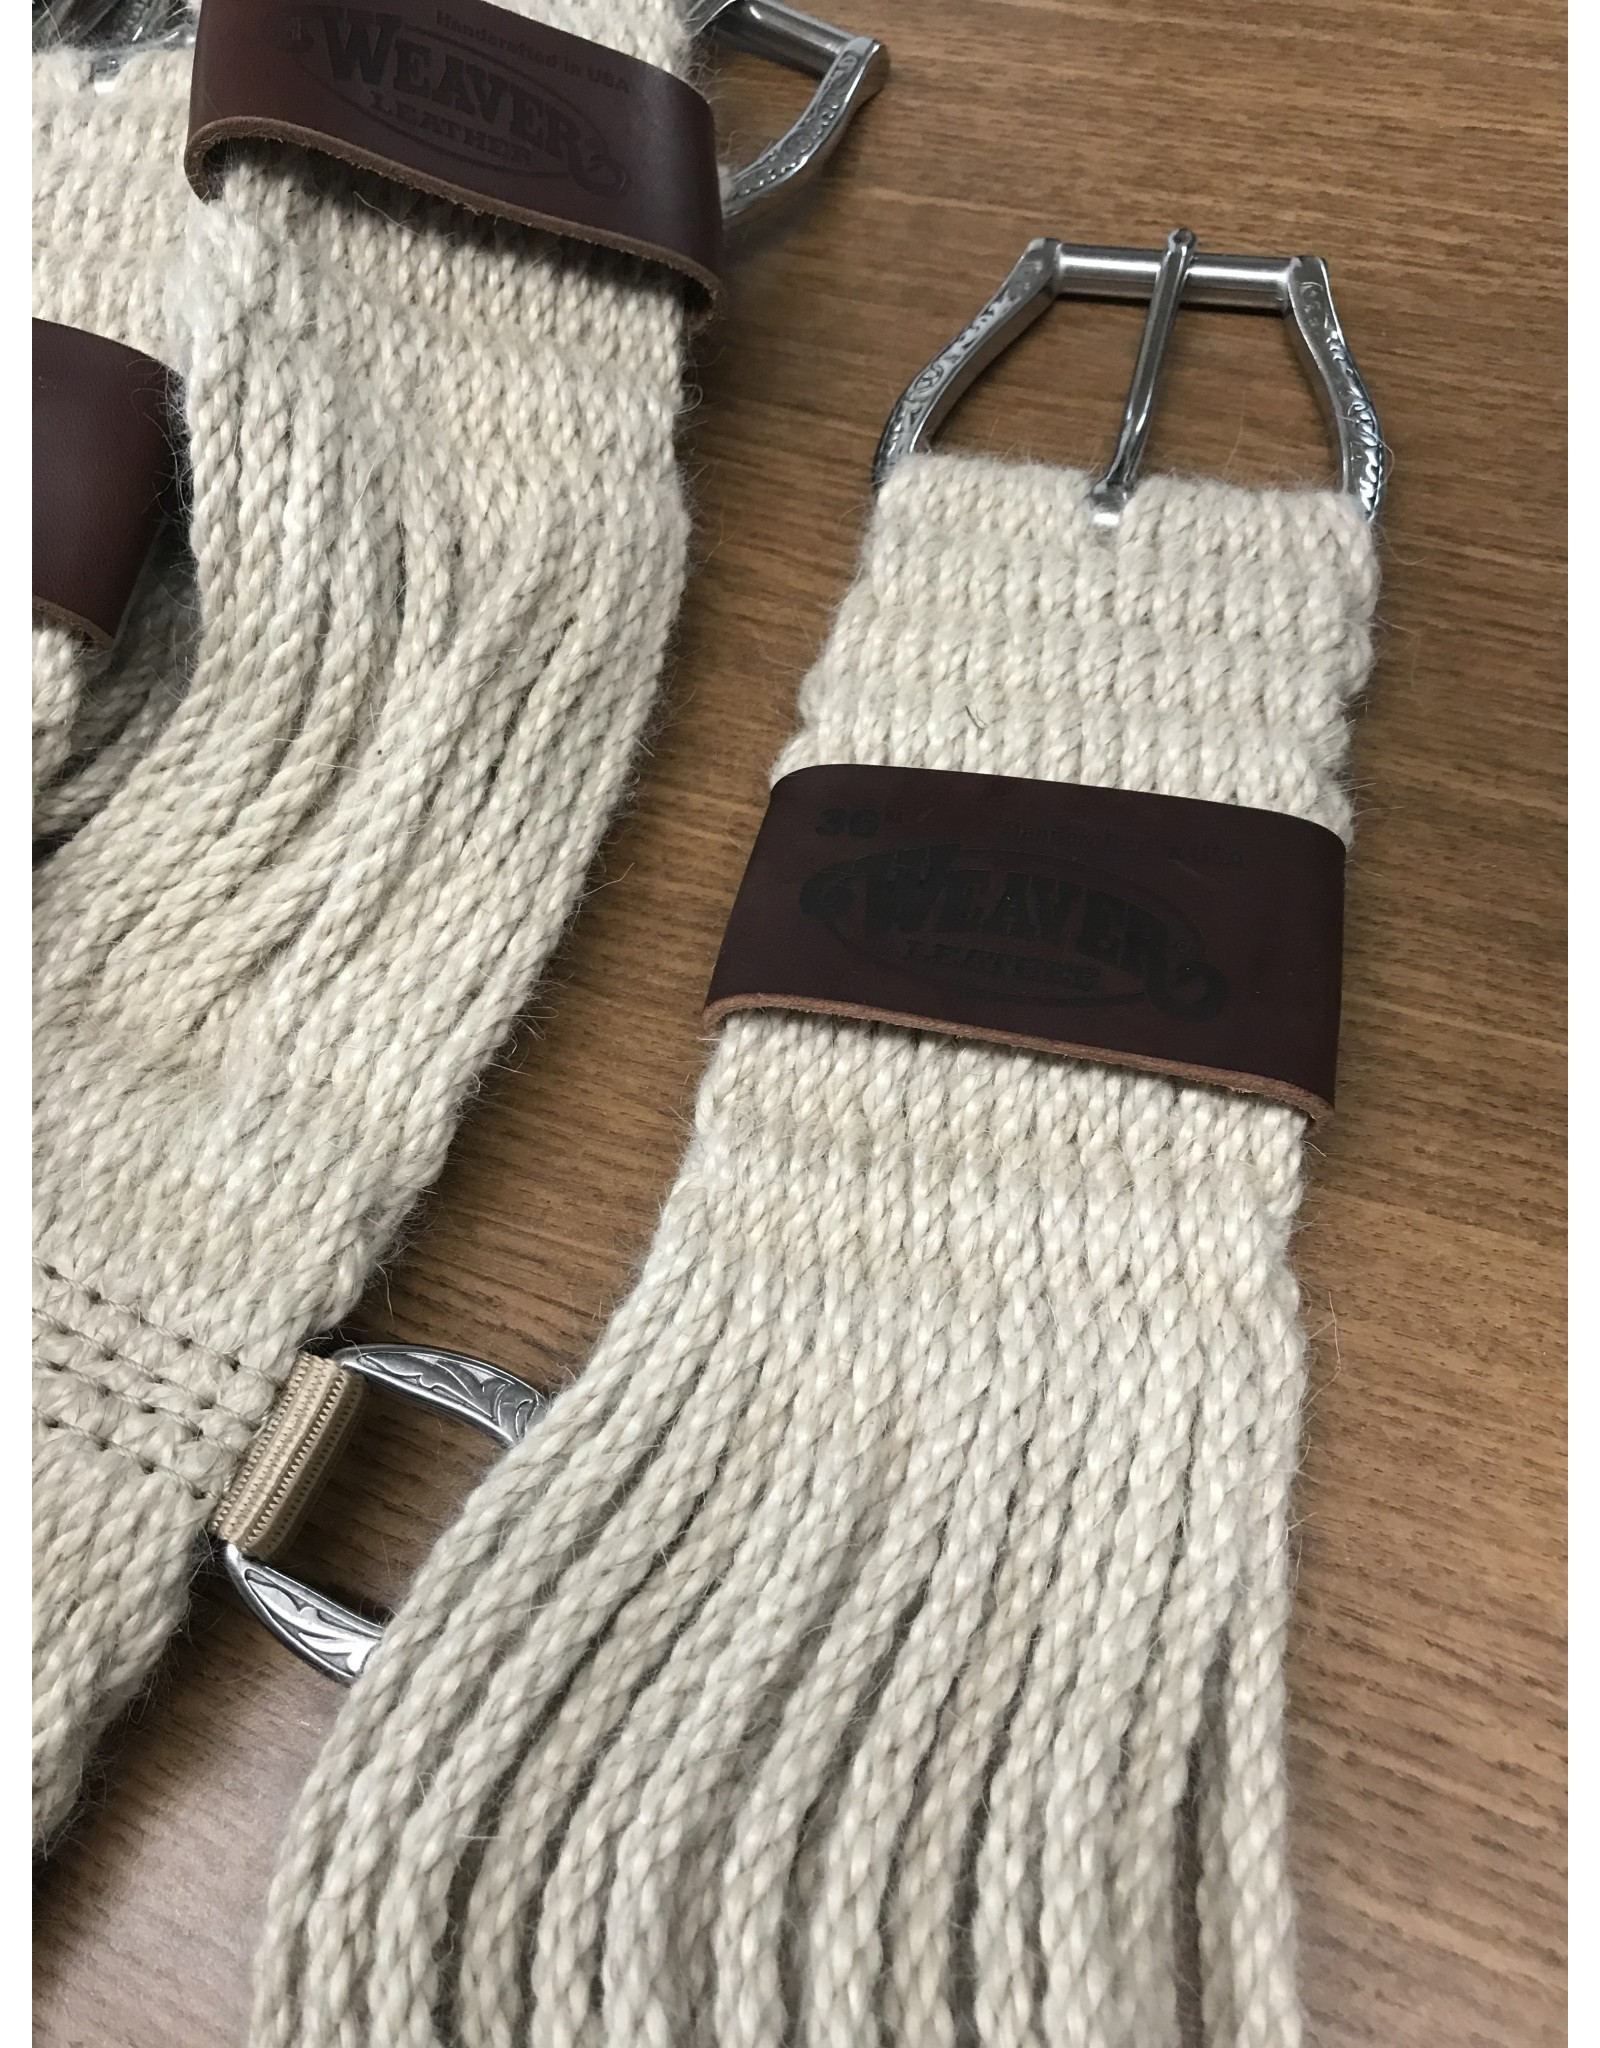 CIN* 100% Mohair Straight Cinch 30   AAAA*P (fancy roller buckles and one side leather cinch holder)35-2435 B/O